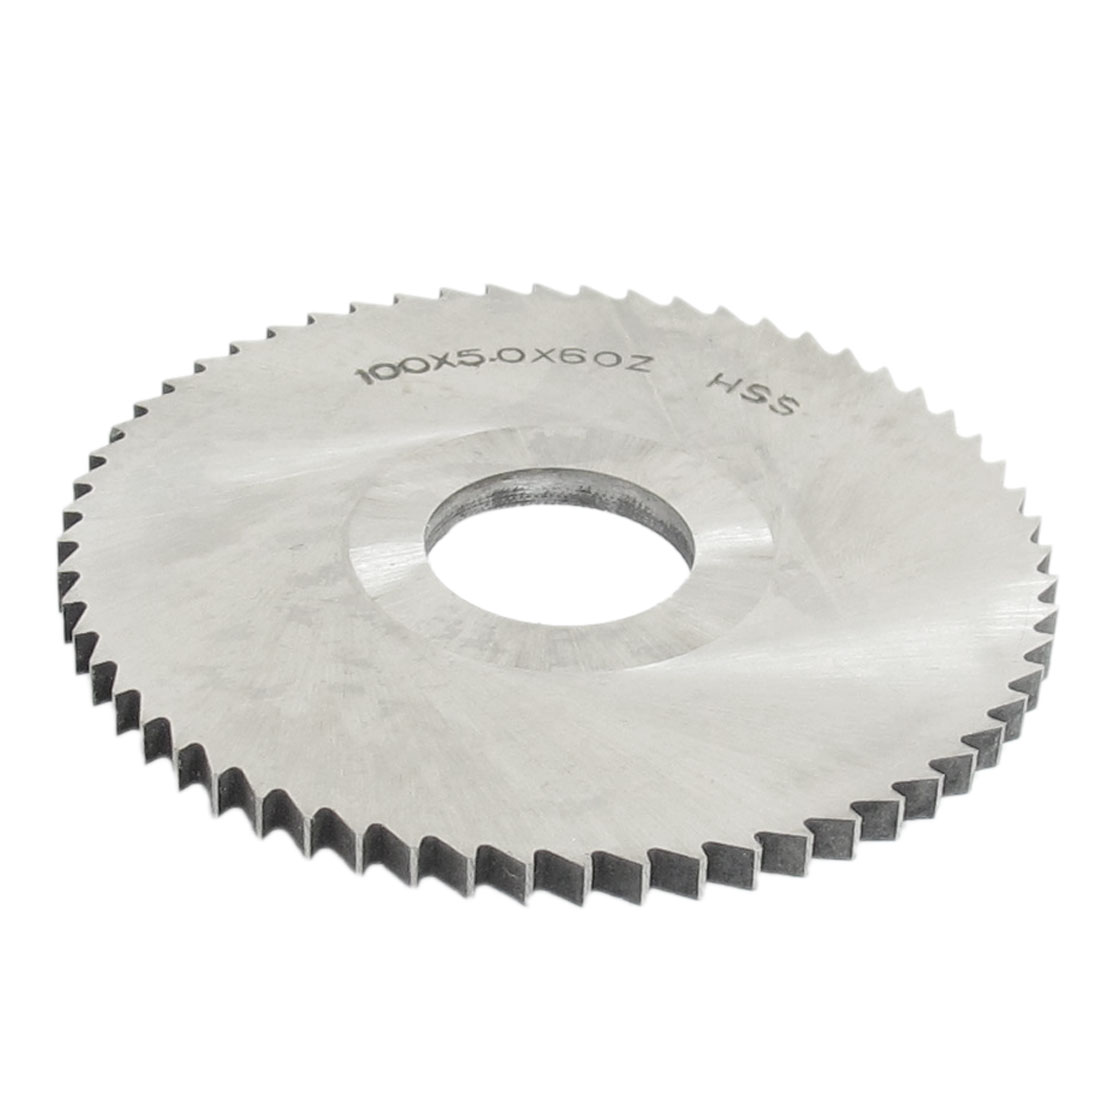 HSS 100mm Dia 5mm Thickness 60 Teeth Circular Slitting Saw